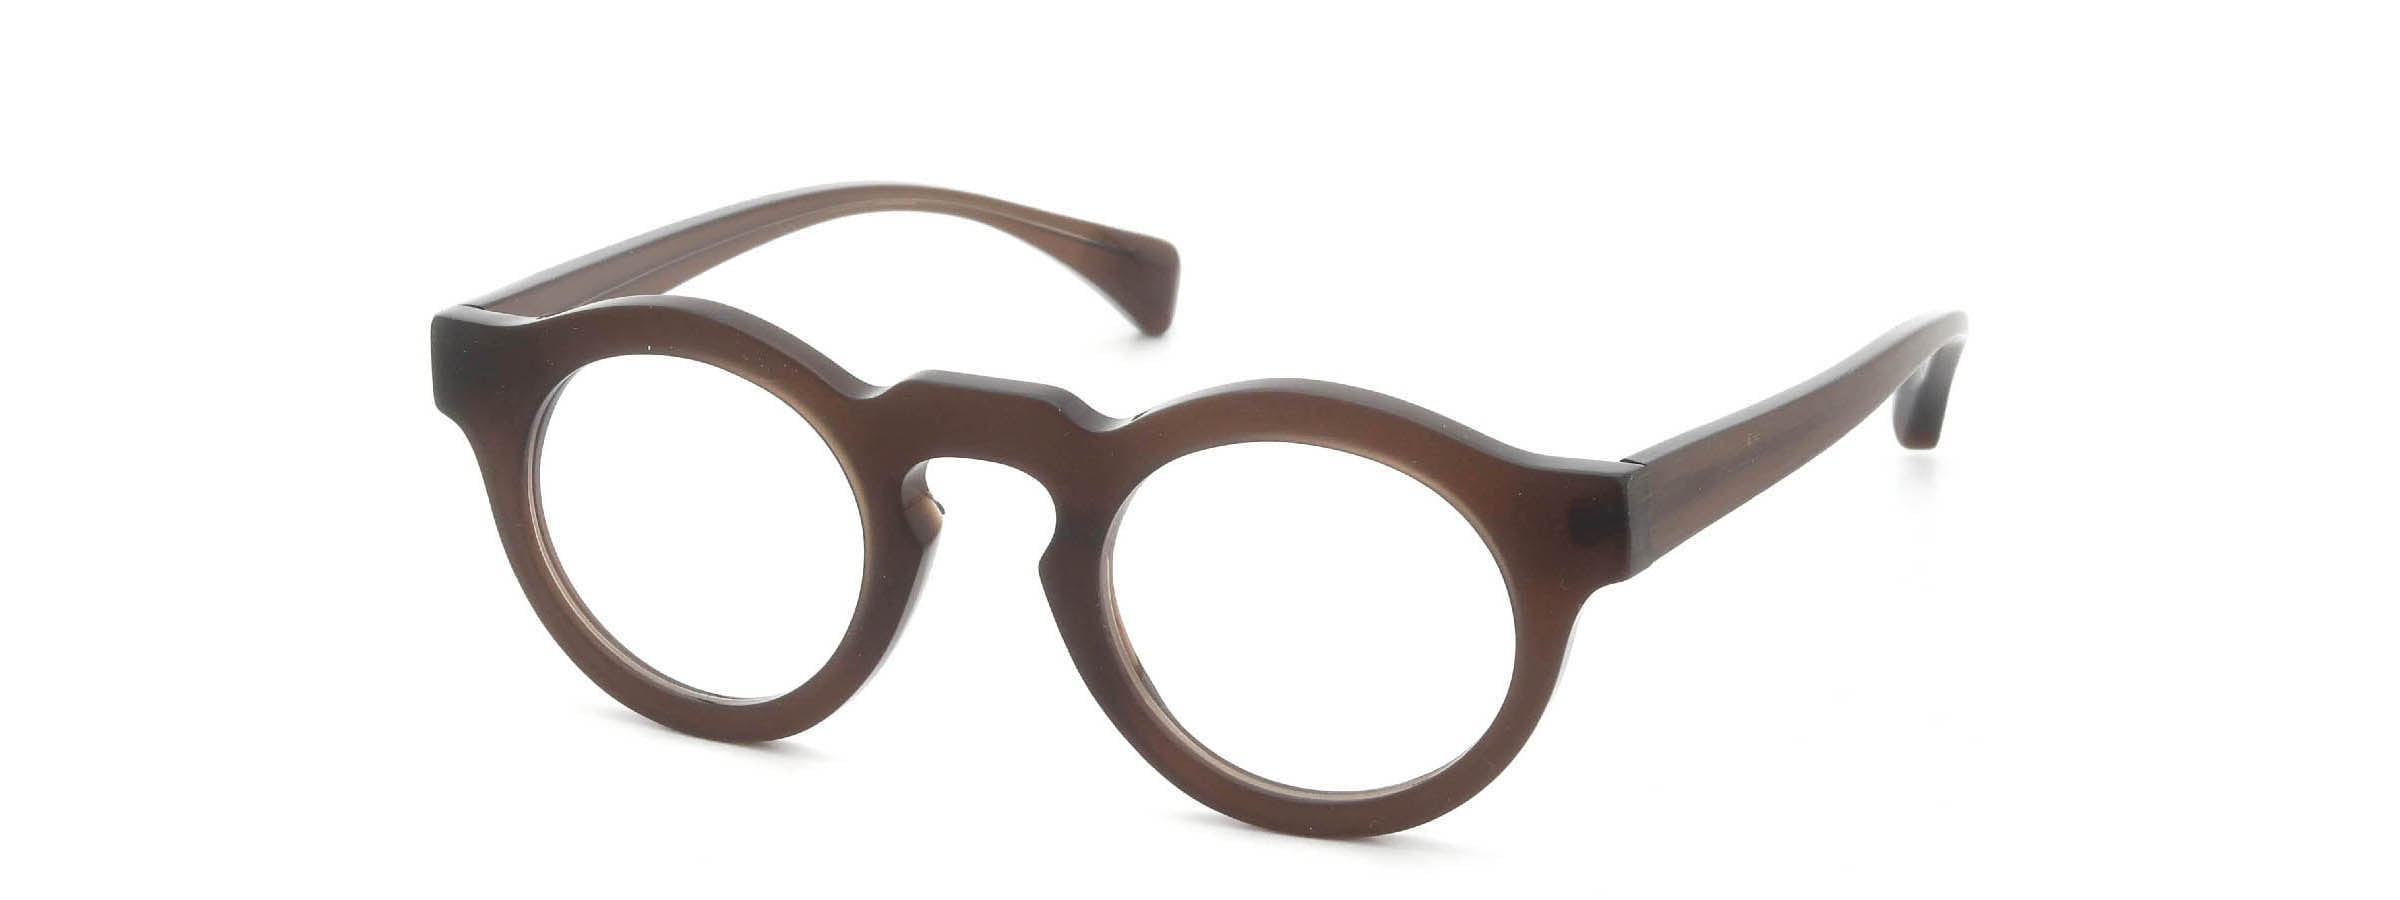 Jacques durand PAQUES 106 col.007 HM-brown全体像